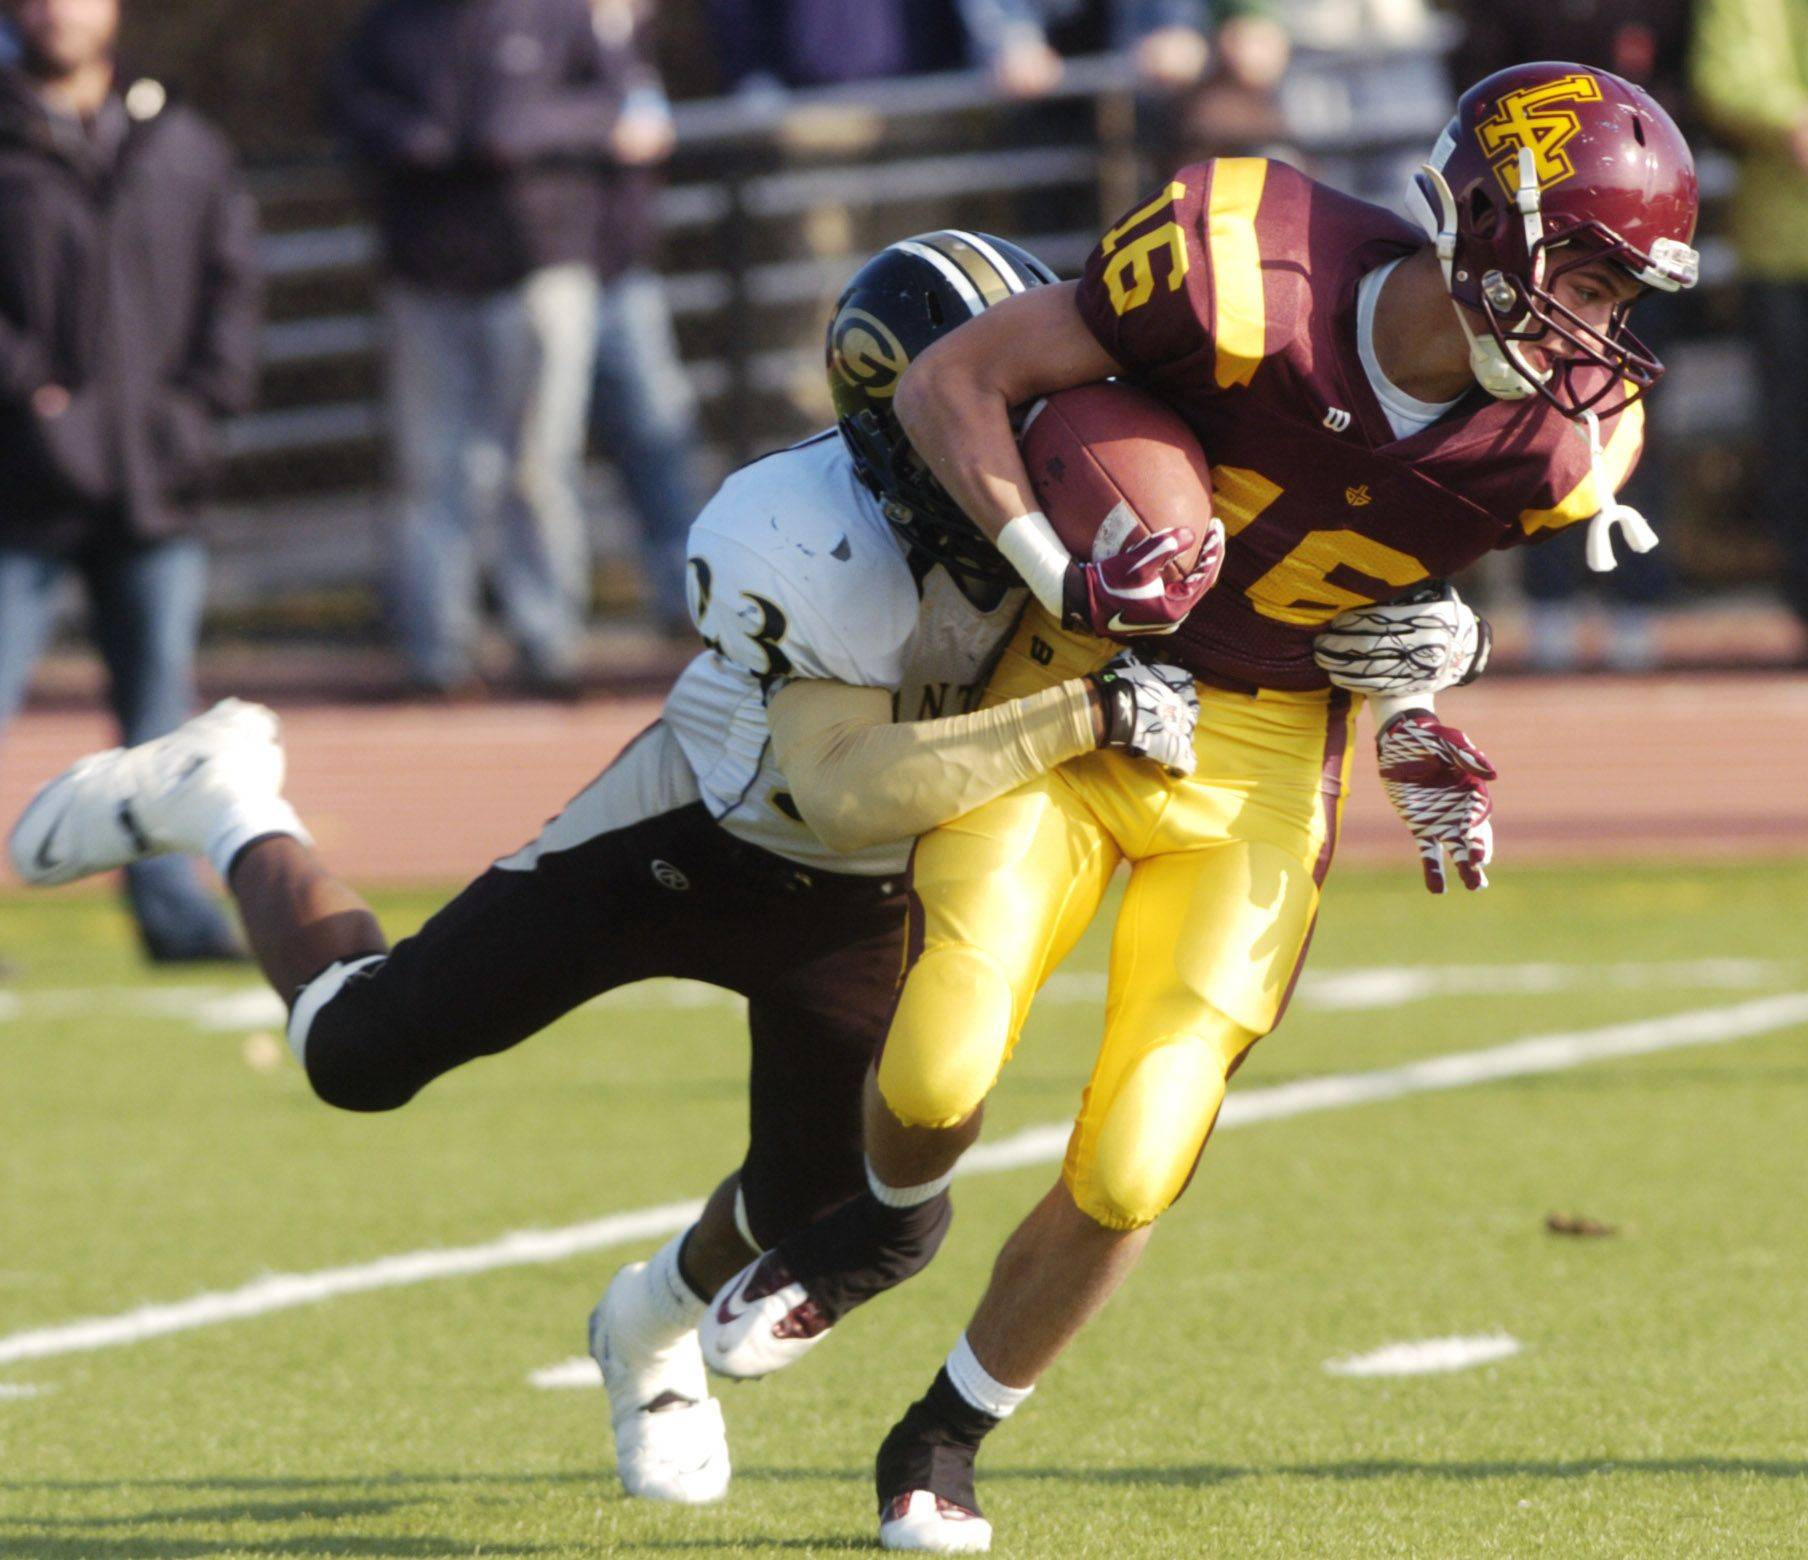 Richie Wehman III of Loyola Academy is tackled by Tremel Smith of Glenbard North.